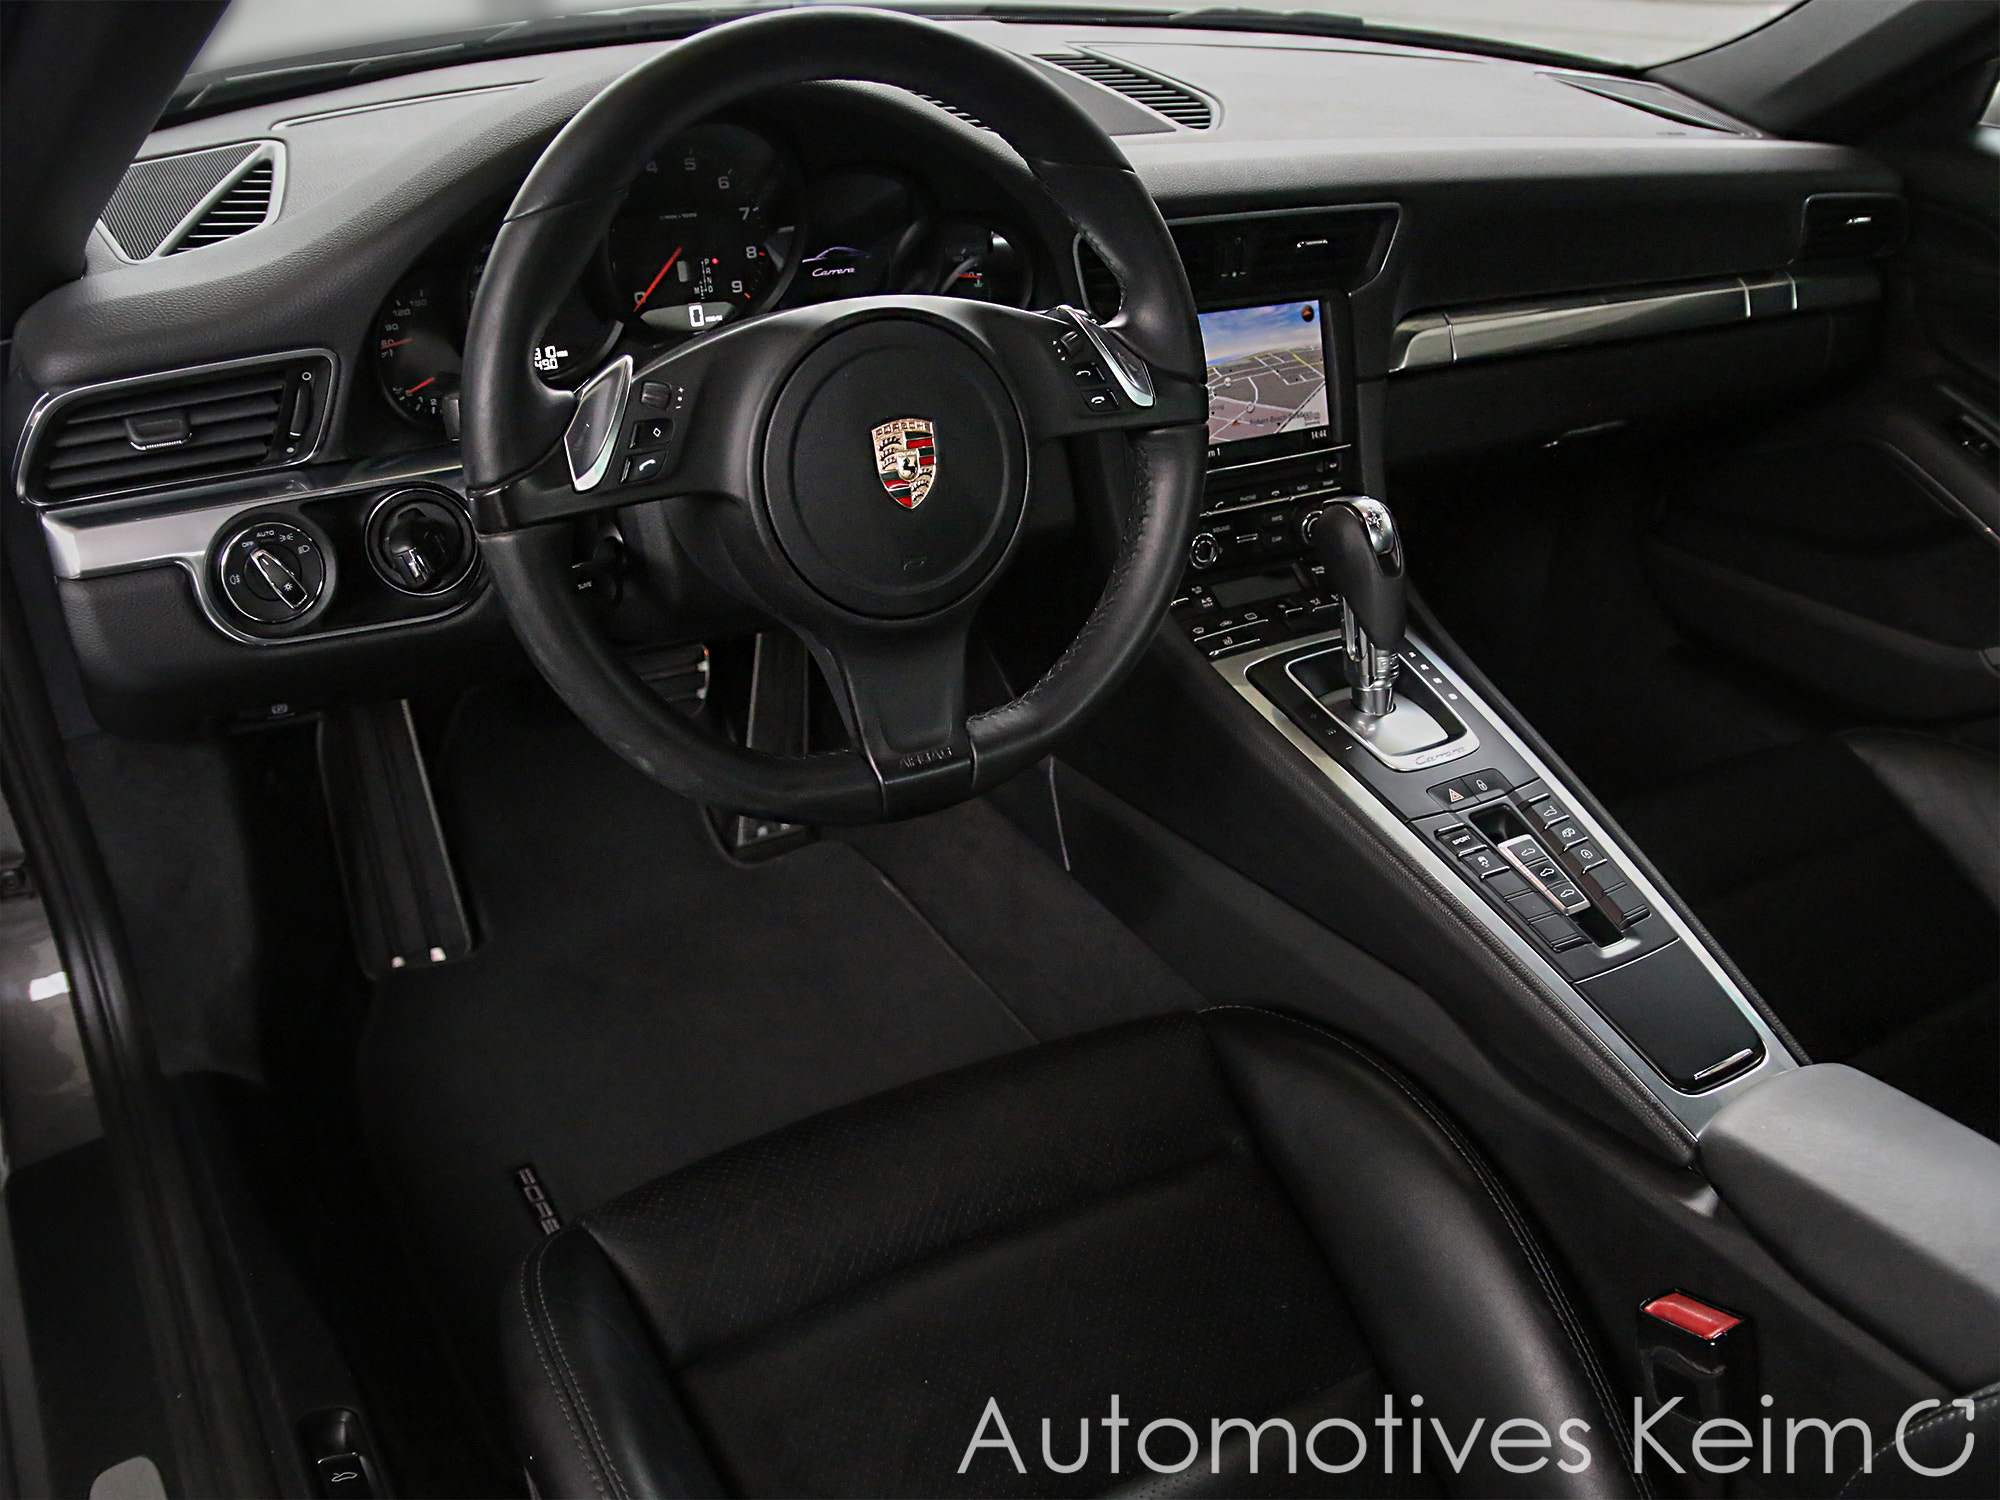 PORSCHE 911 991 COUPE Automotives Keim GmbH 63500 Seligenstadt Www.automotives Keim.de Oliver Keim 000251